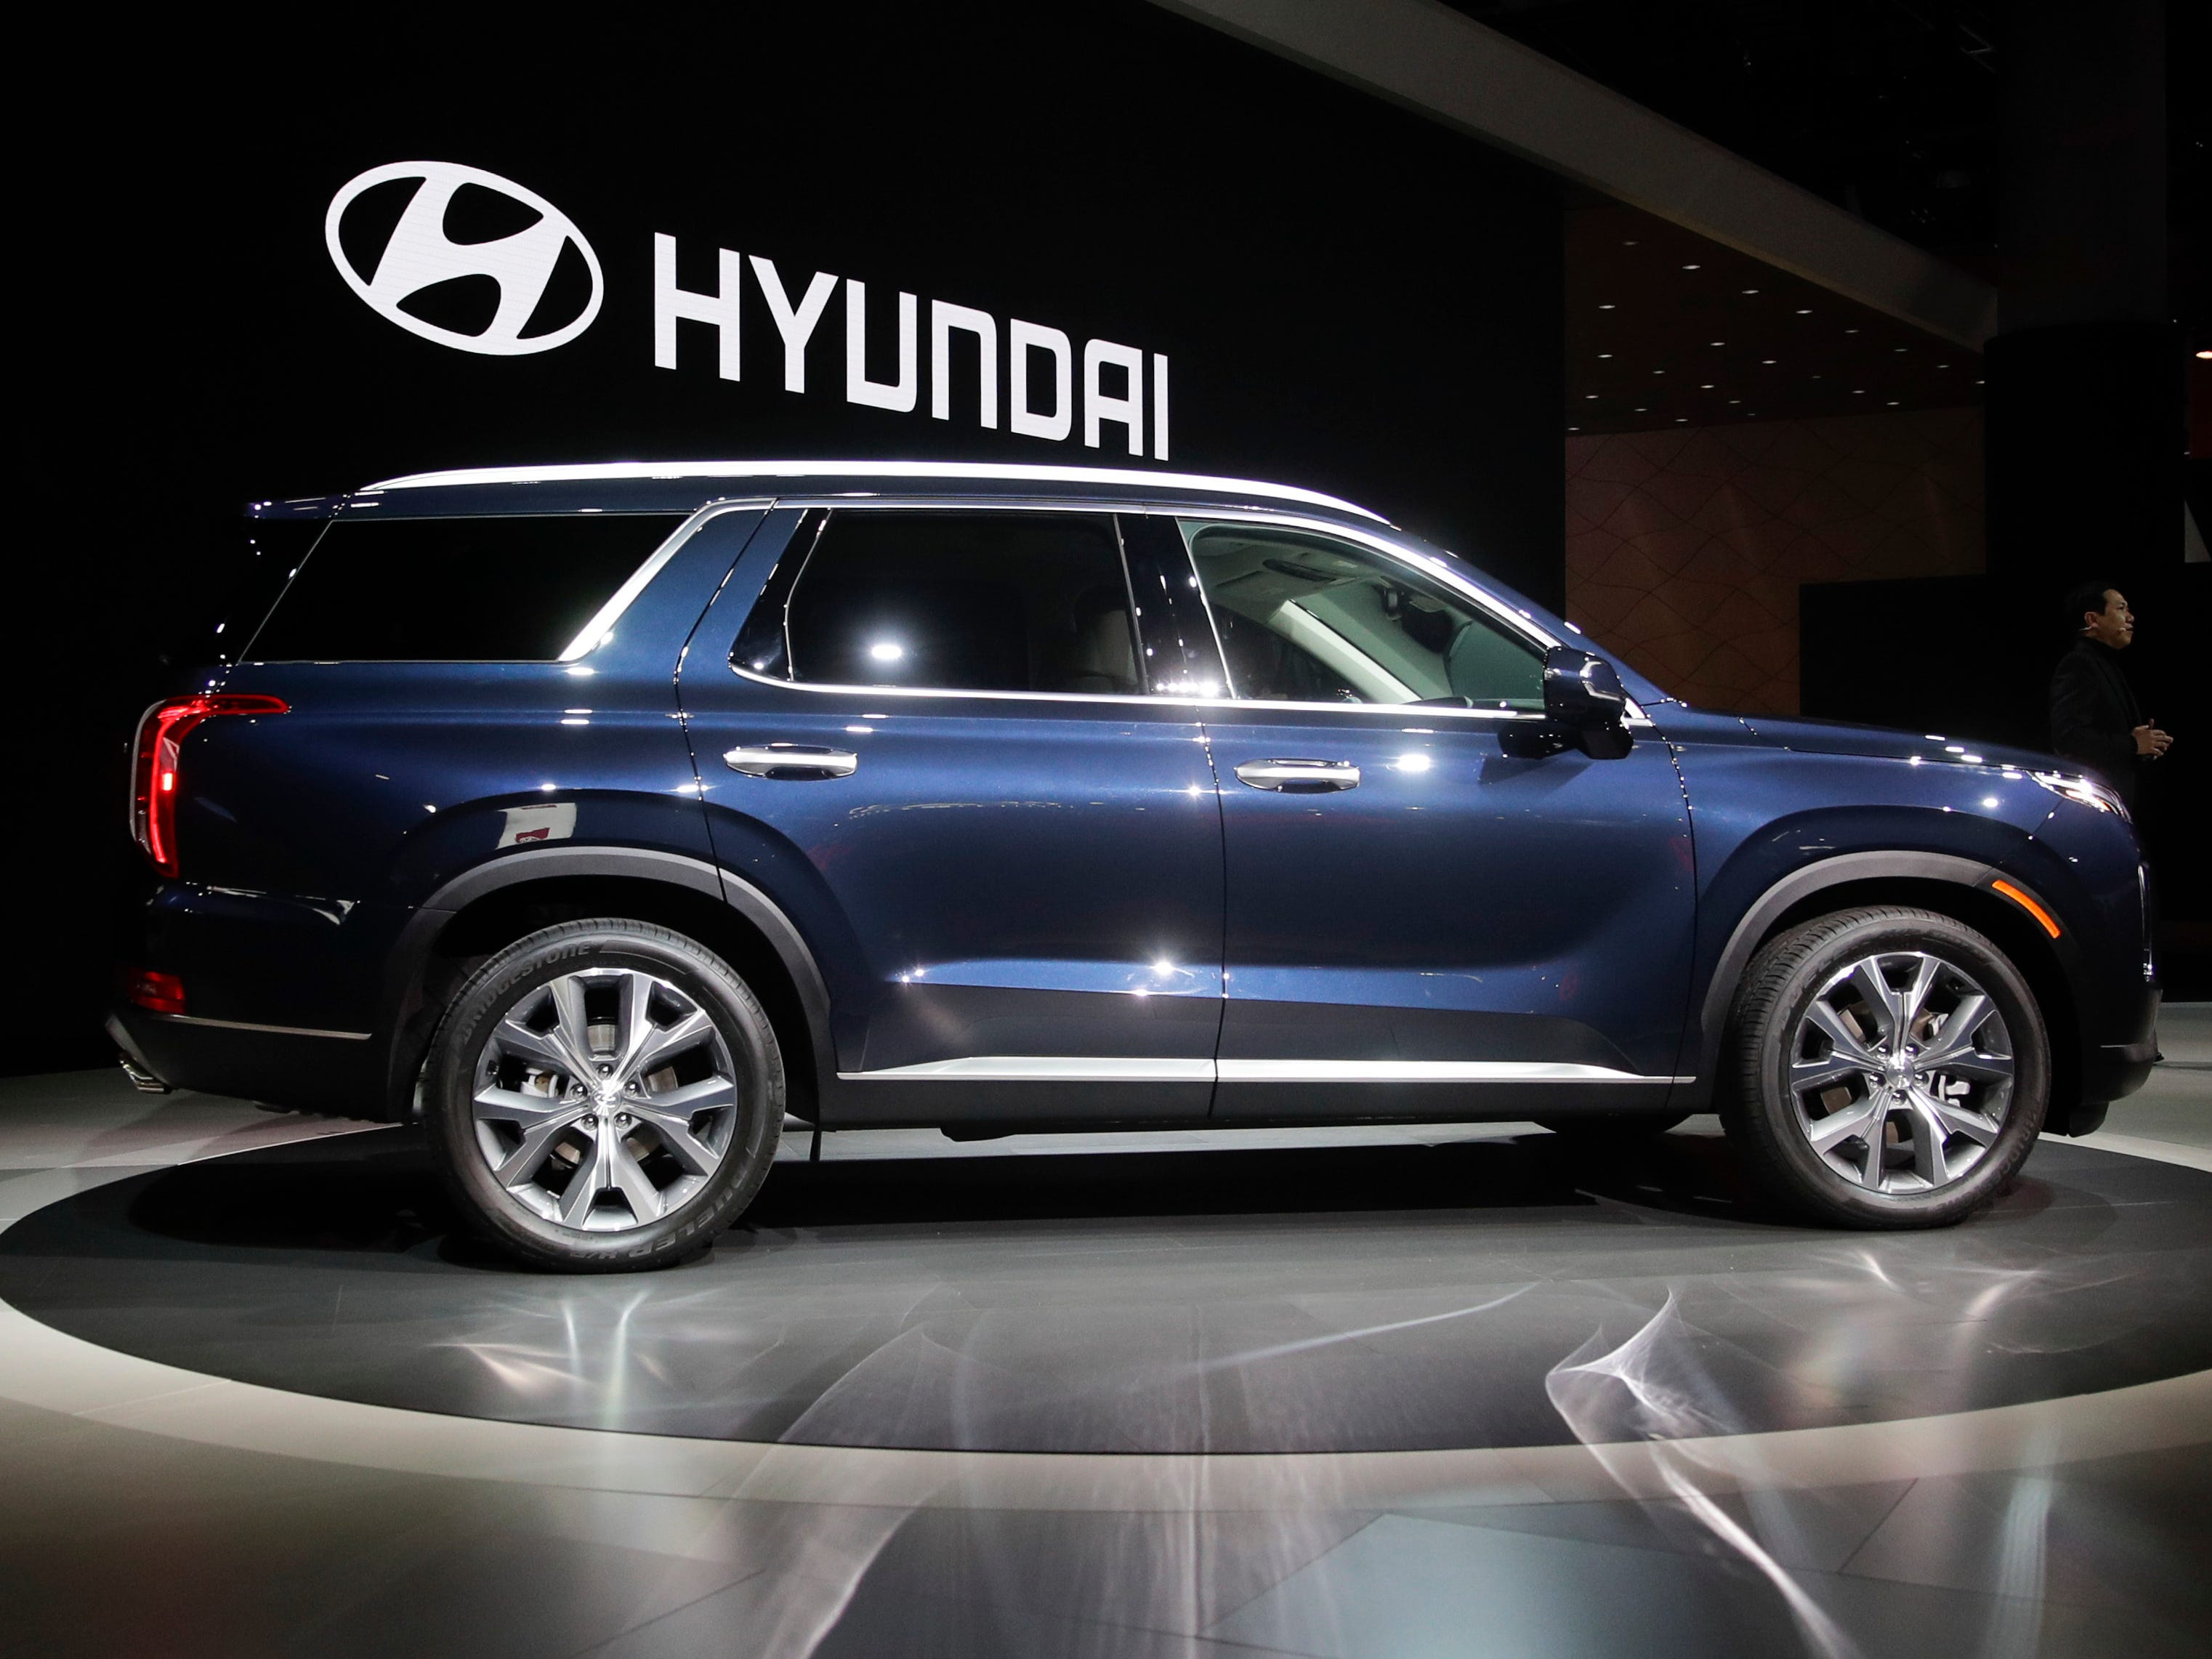 The 2020 Hyundai Palisade - the brand's first three-row SUV - is introduced at the Los Angeles Auto Show.